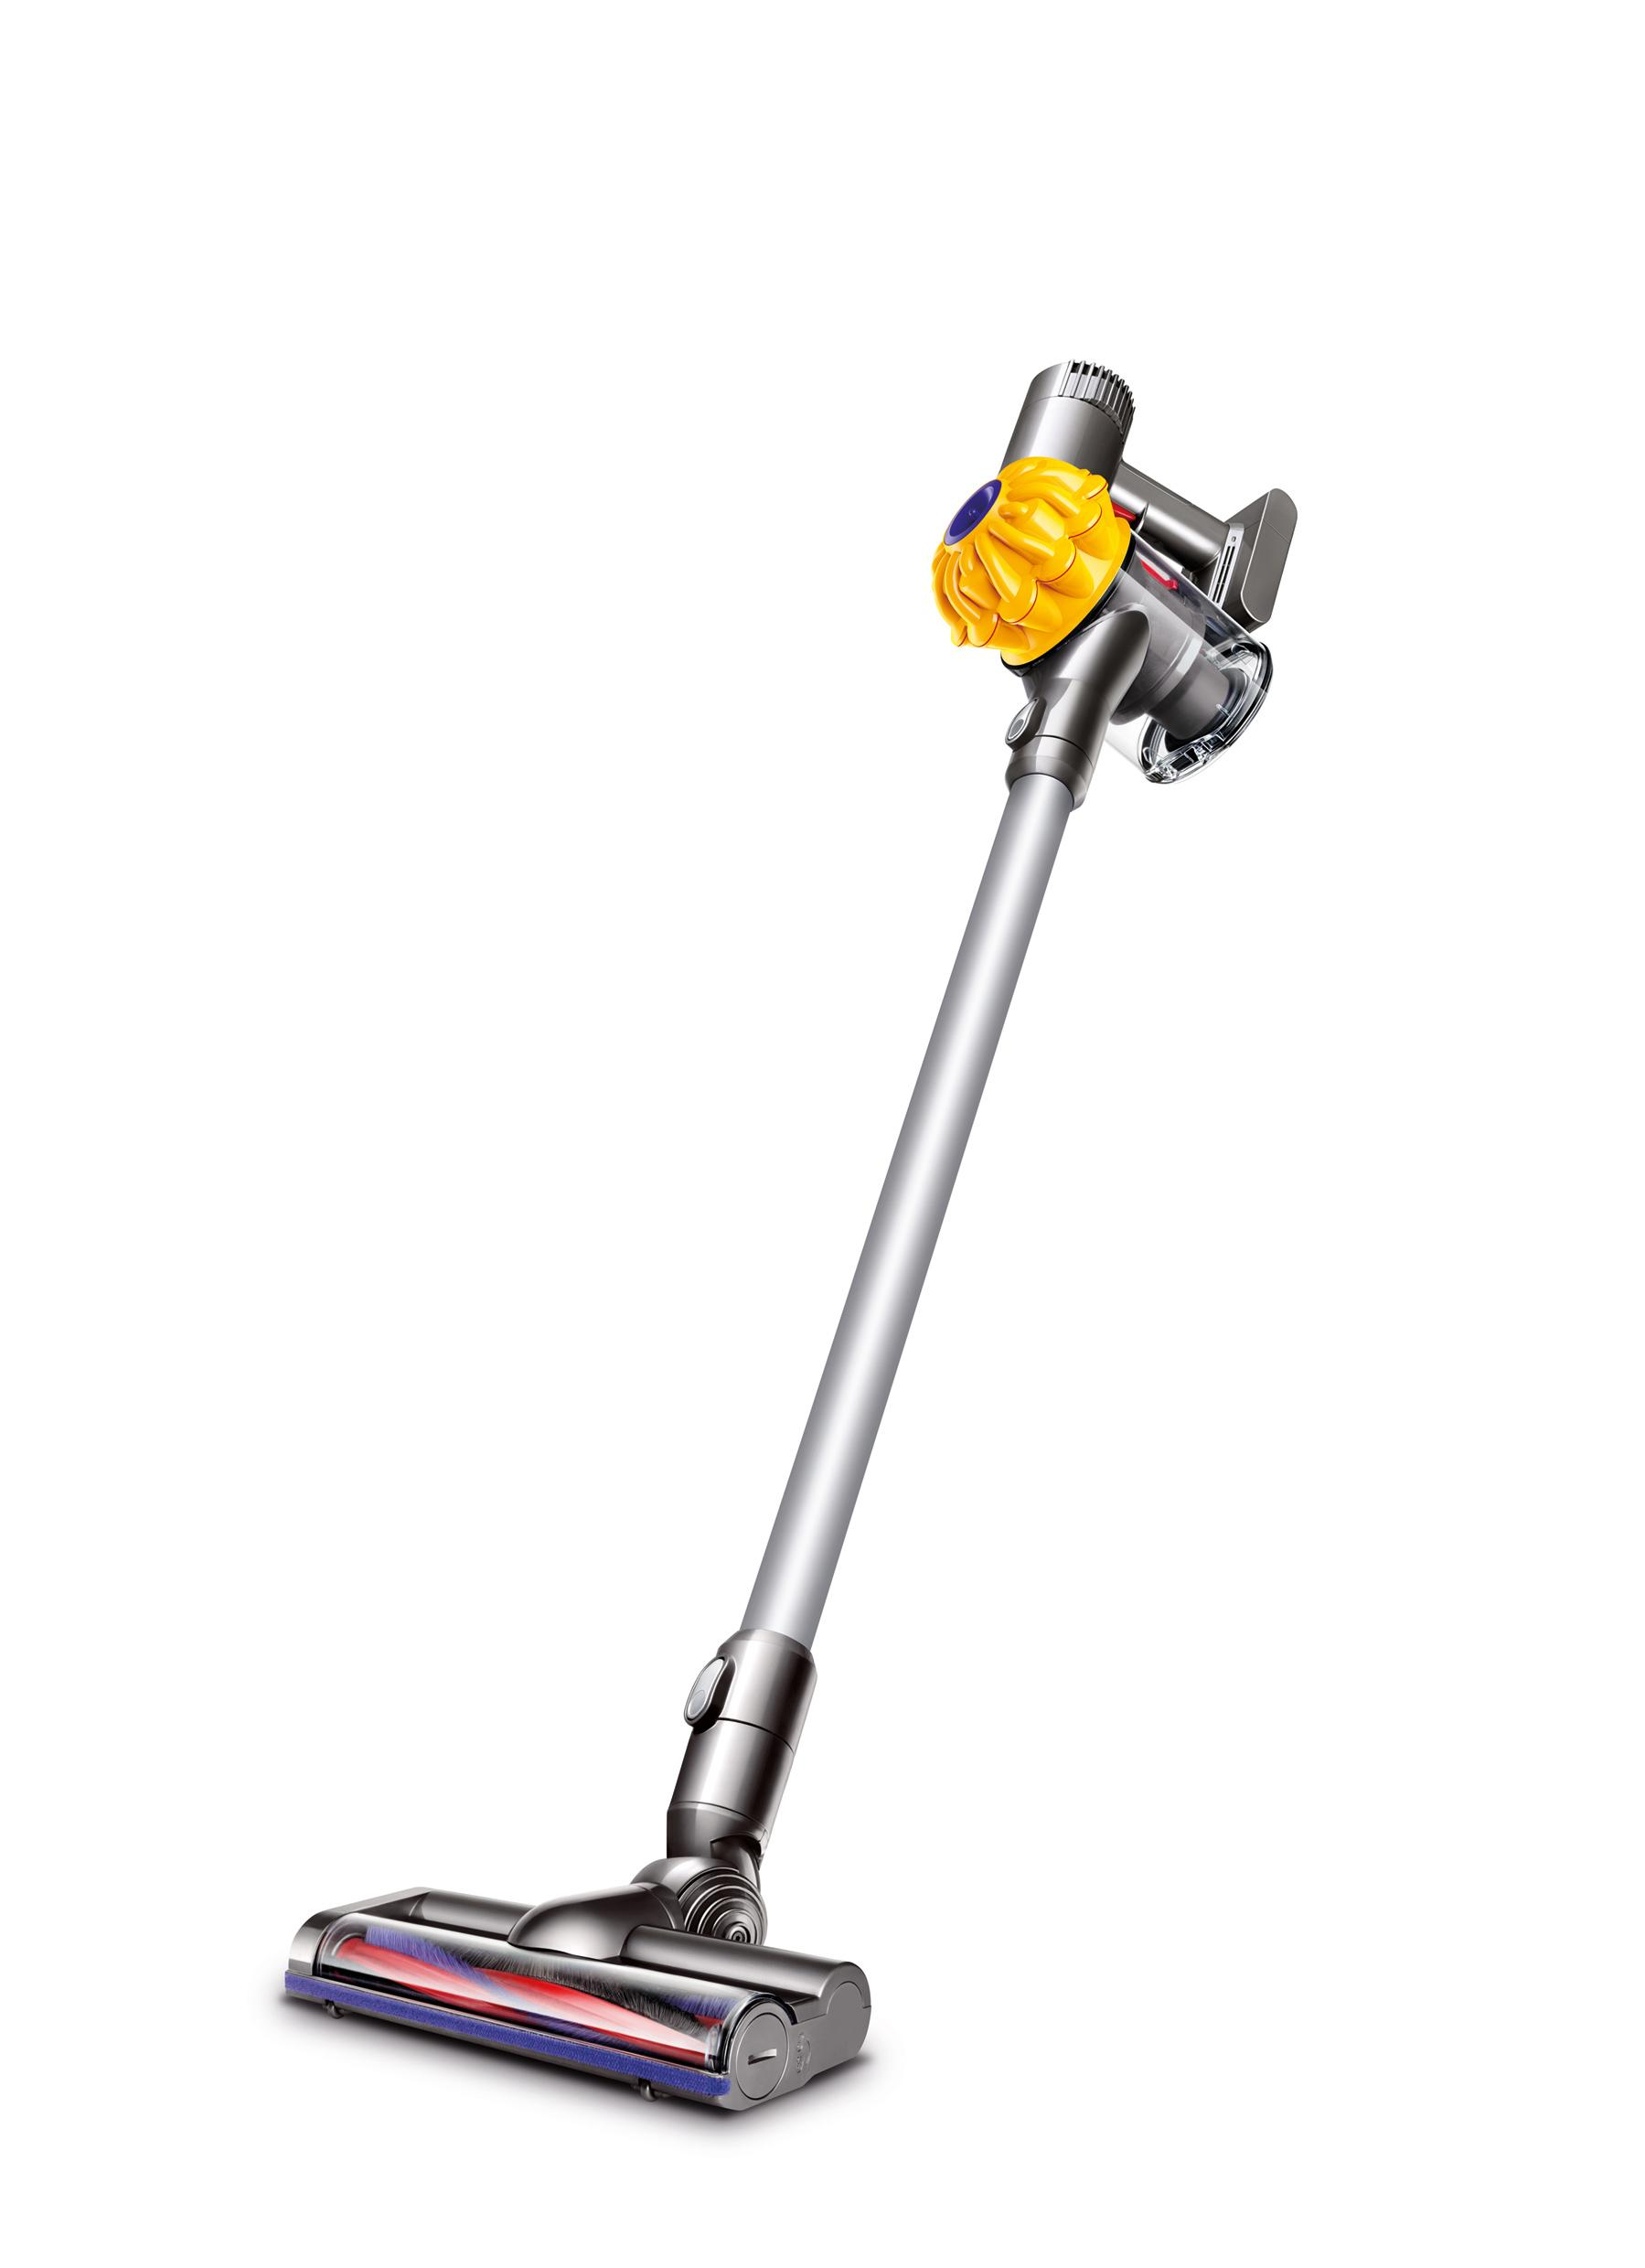 dyson v6 cord free extra staubsauger elektrob rste 25cm wandhalterung mit. Black Bedroom Furniture Sets. Home Design Ideas